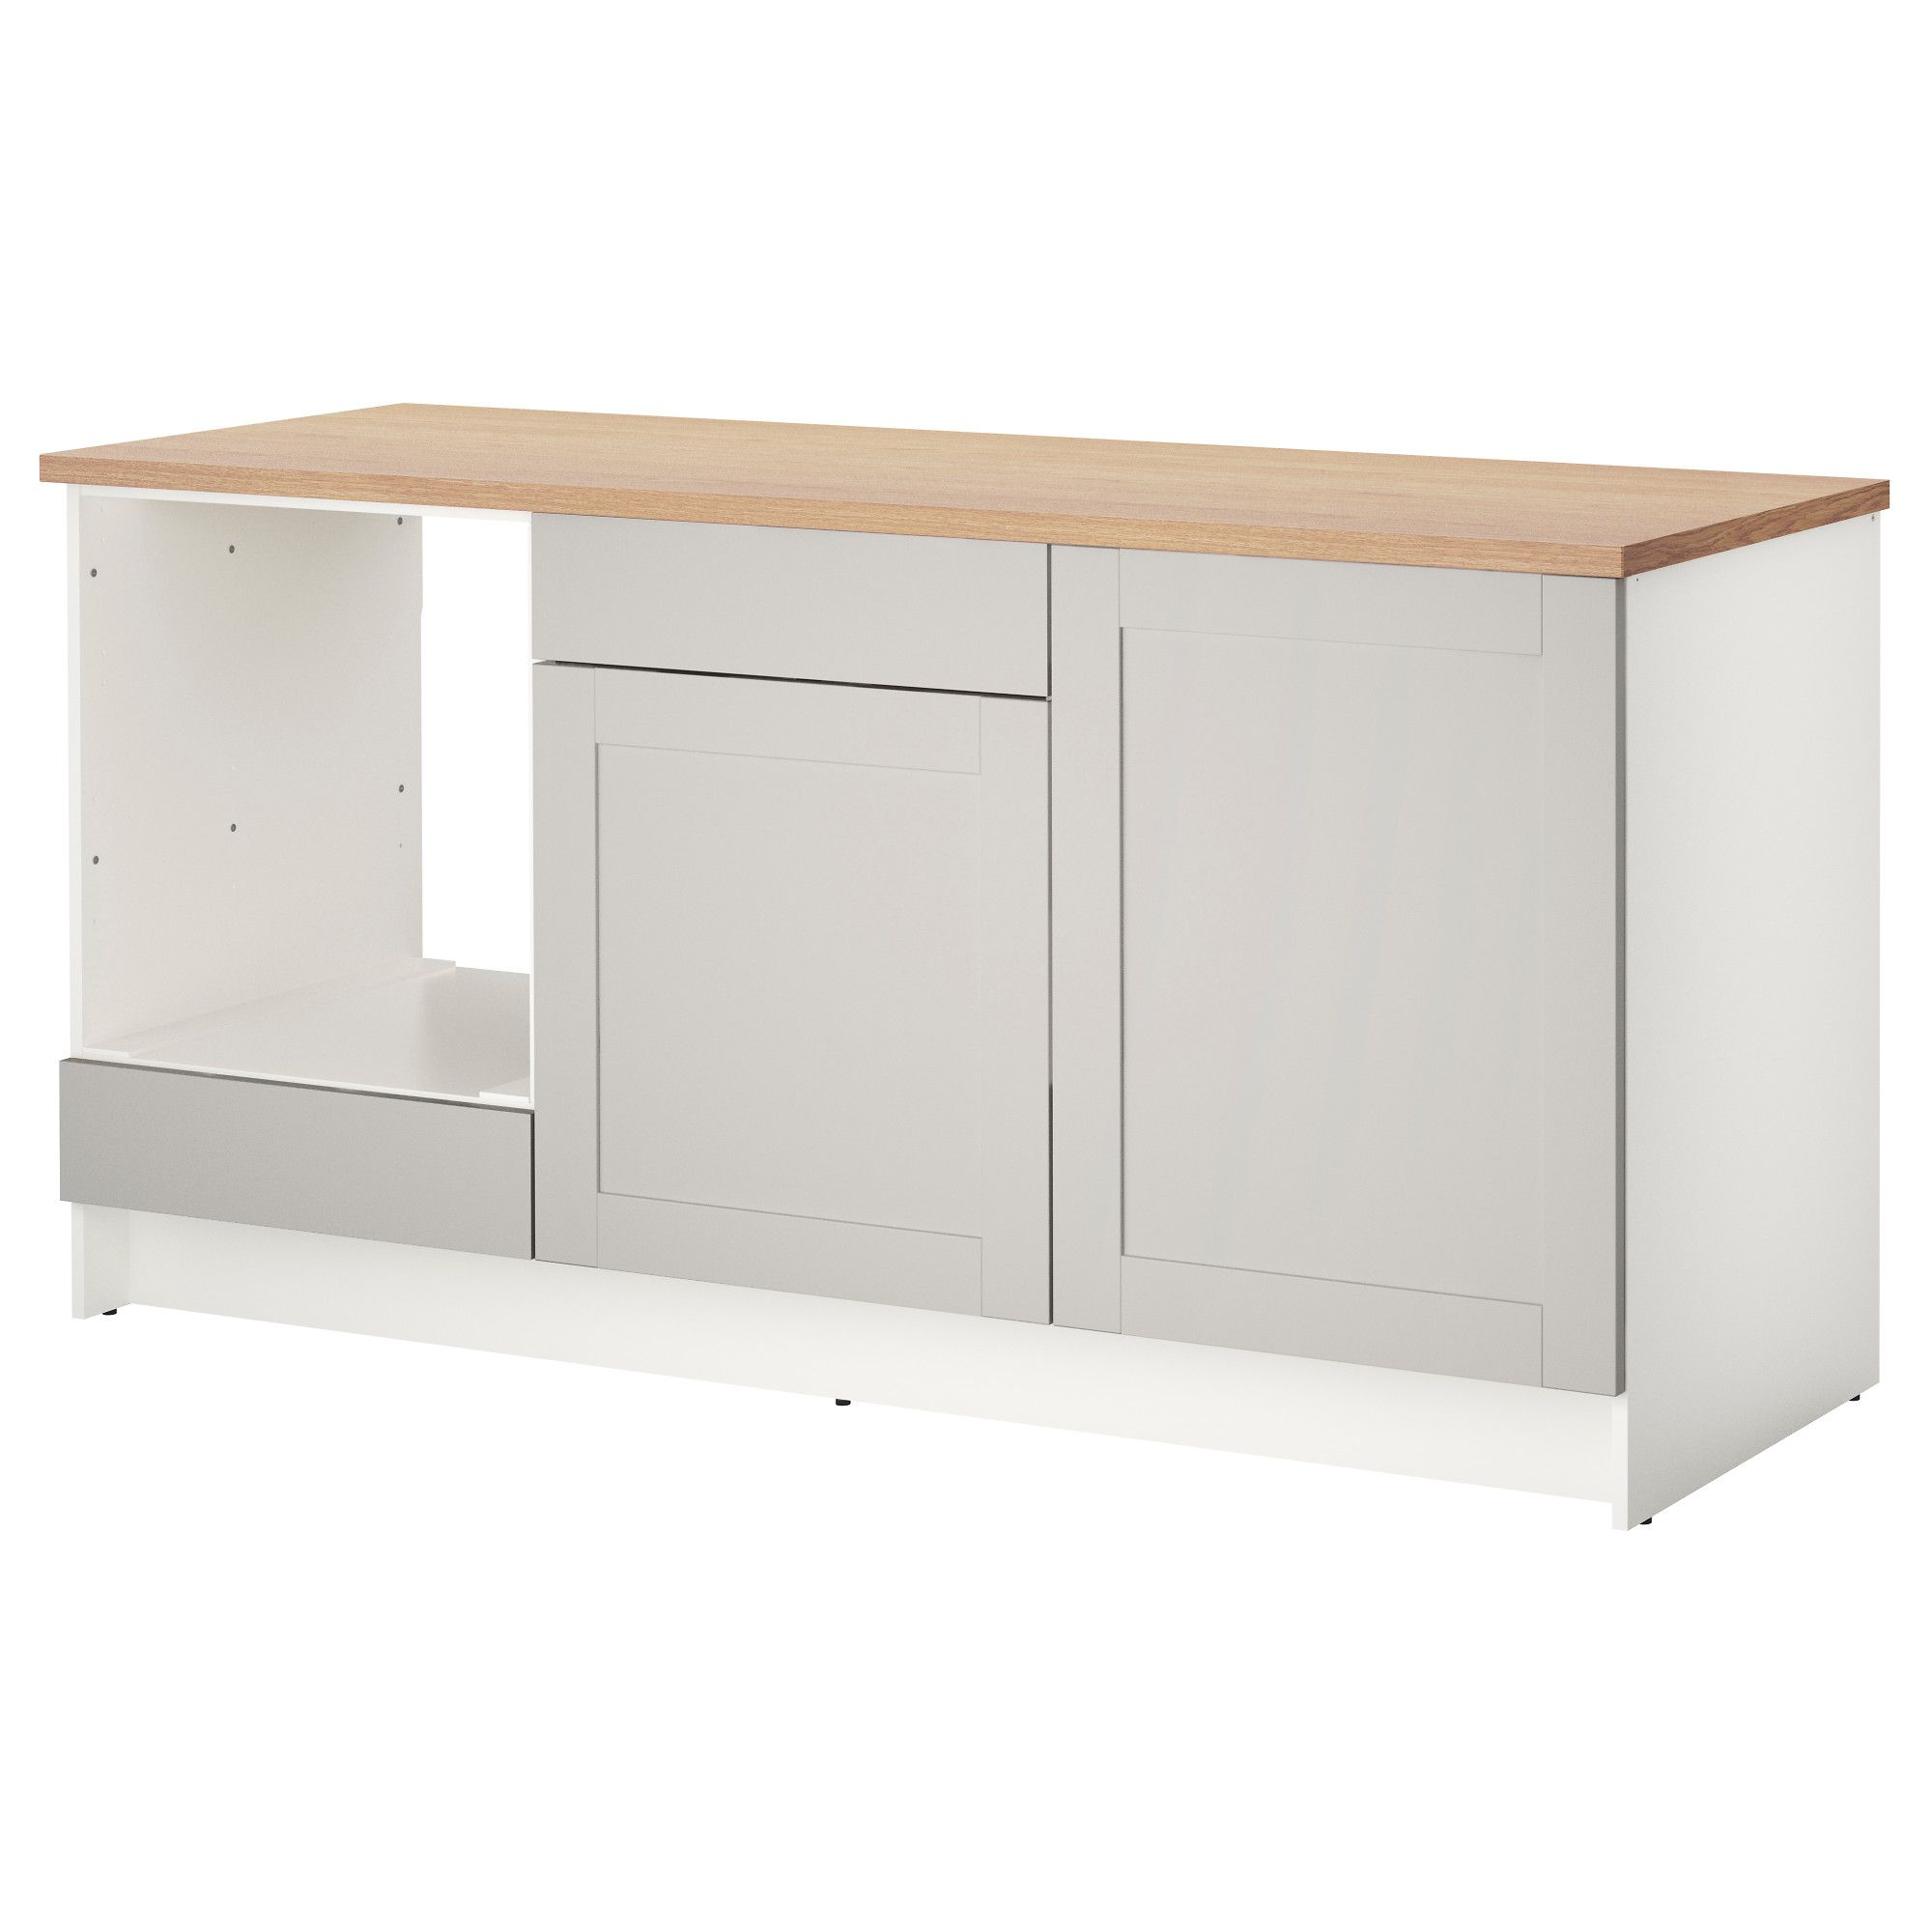 Ikea Küche 120 Cm Knoxhult Base Cabinet With Doors And Drawer Grey Ikea In 2019 My